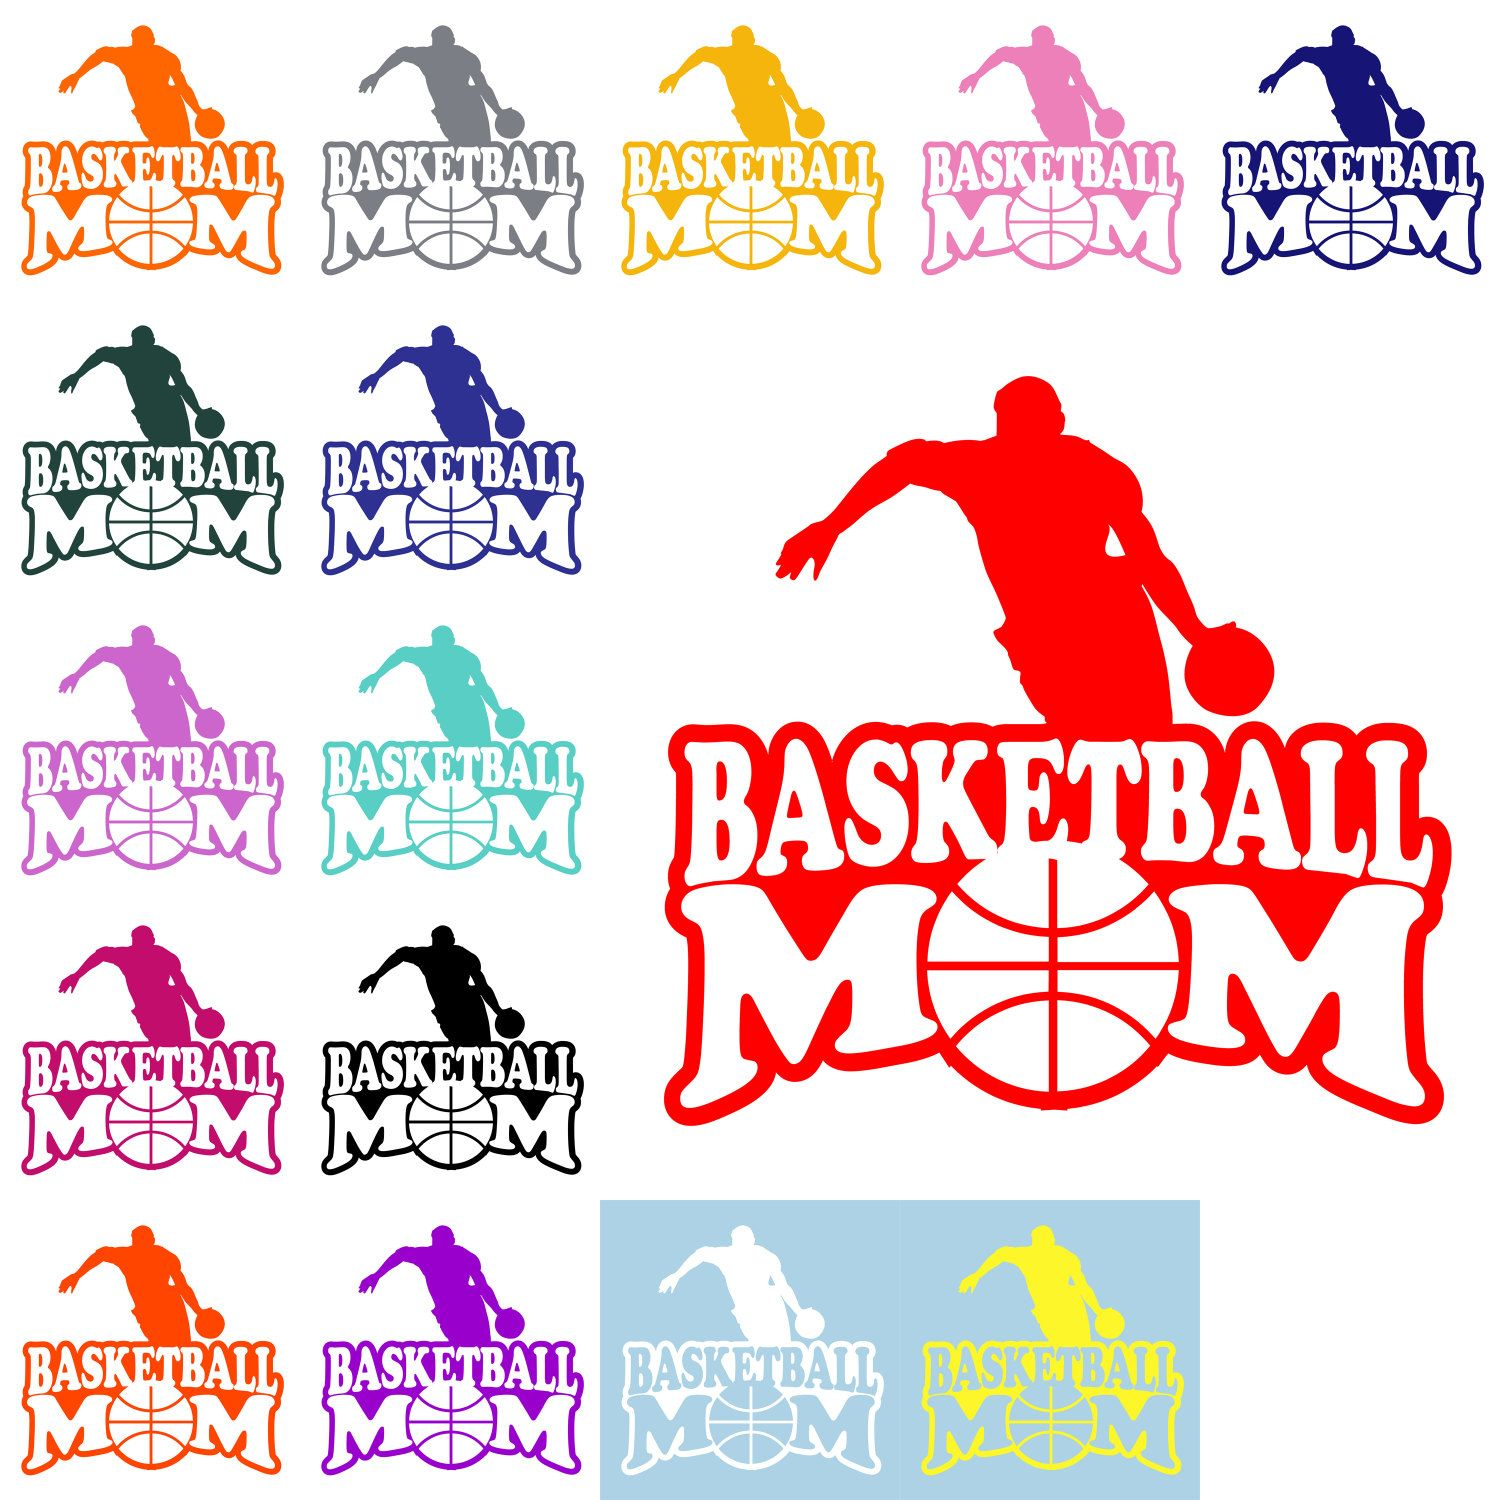 BASKETBALL MOM DECAL Basketball Mom Sticker Sports Mom Decal - Window decals for sports